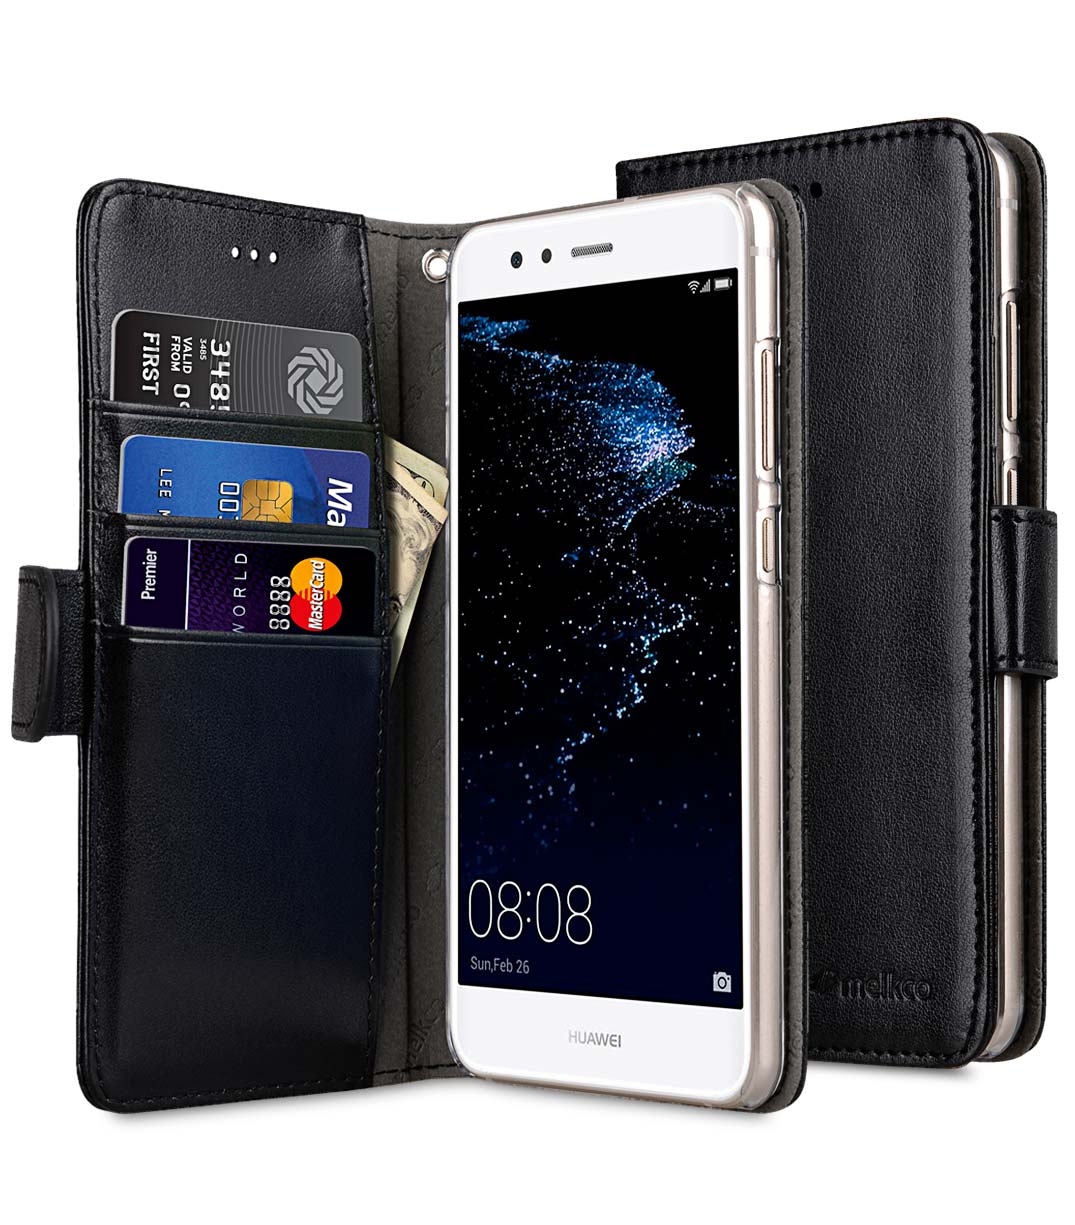 new arrival 3c82e ebd98 PU Cases Wallet Book Clear Type for Huawei P10 lite - (Black PU)